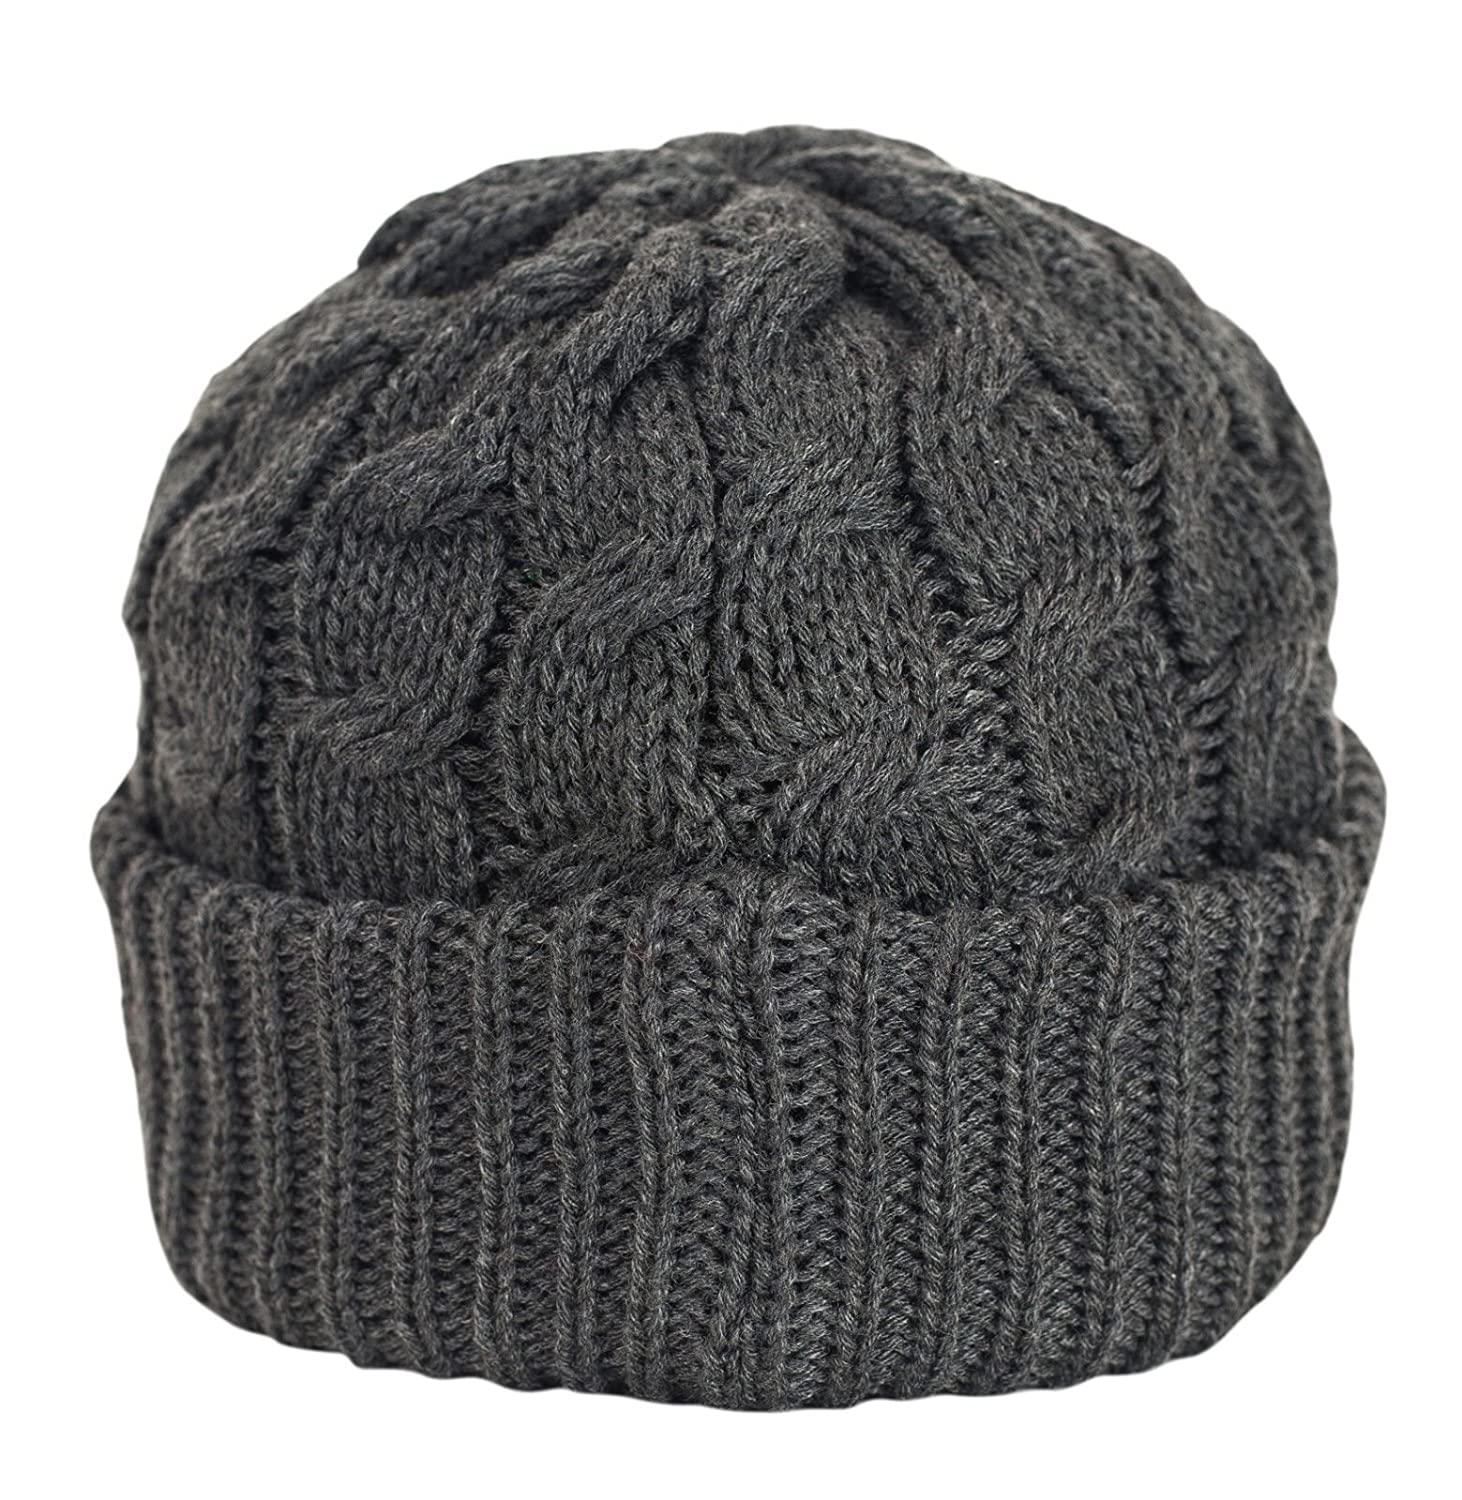 0d80786dc59 Amazon.com  Urbanhatshop Newsboy Cable Knitted Visor Beanie Bill Winter  Warm Hat All Colors (Charcoal)  Clothing